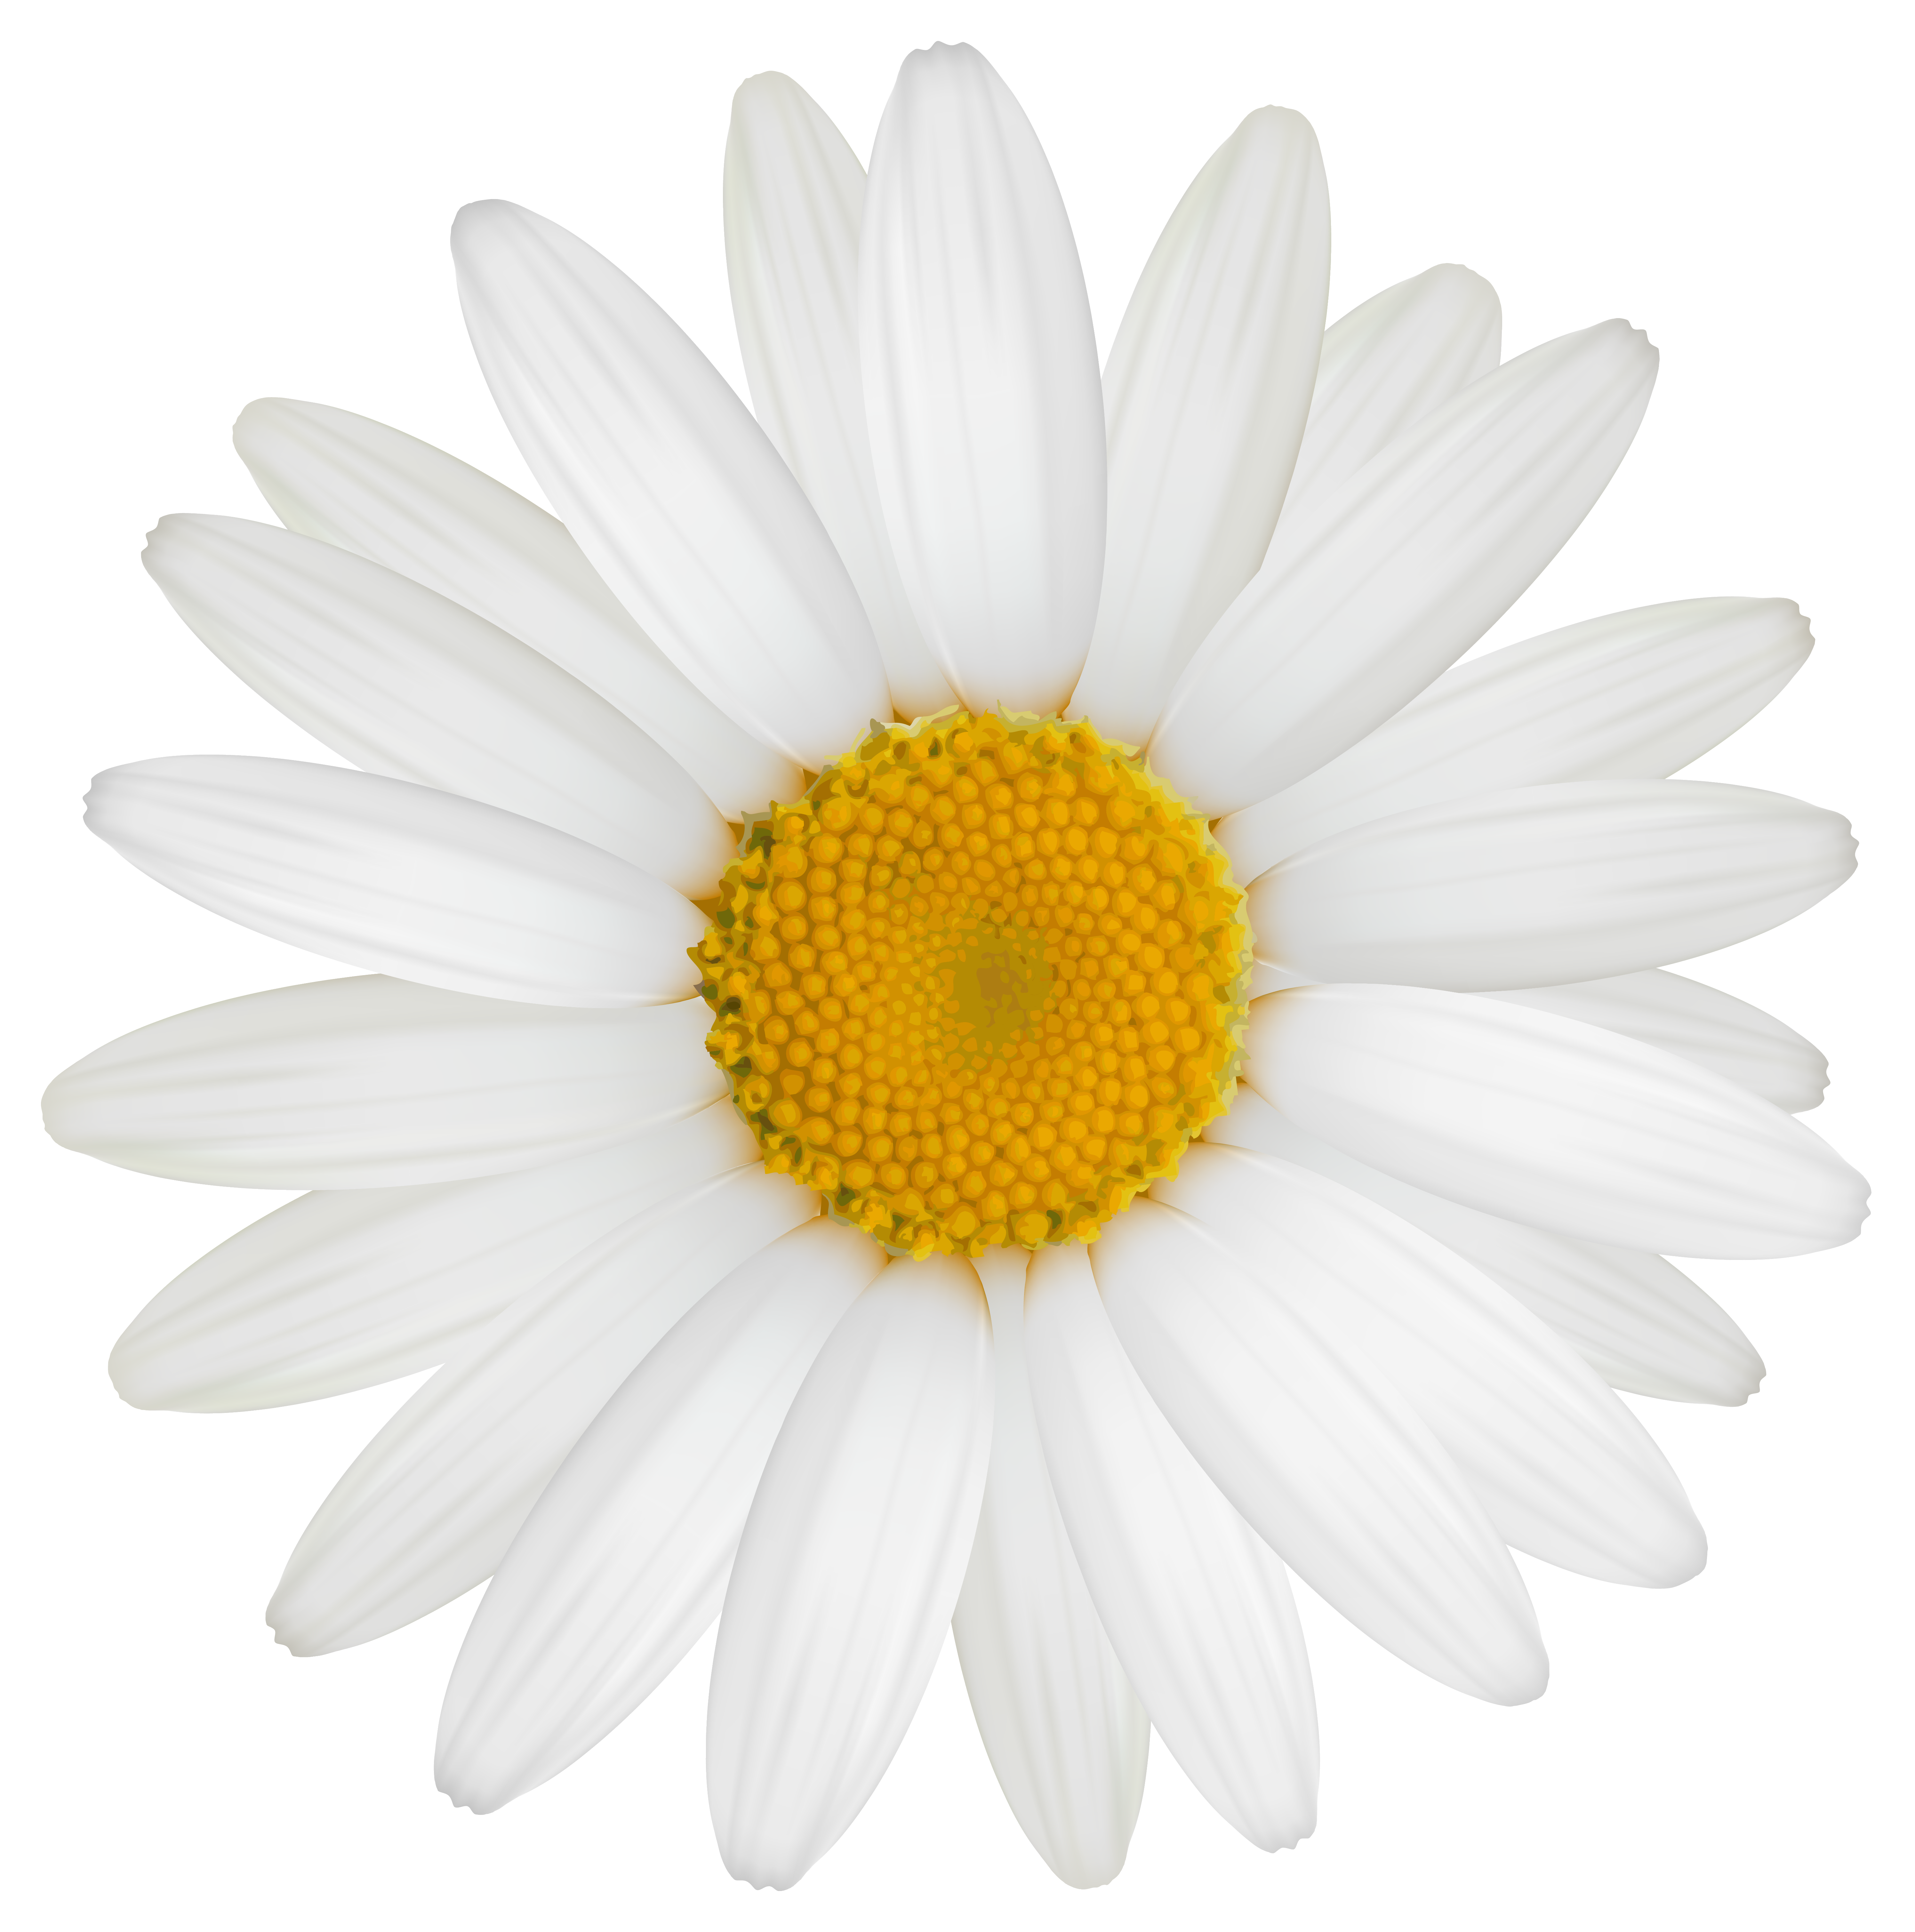 Daisy png. Clipart image gallery yopriceville